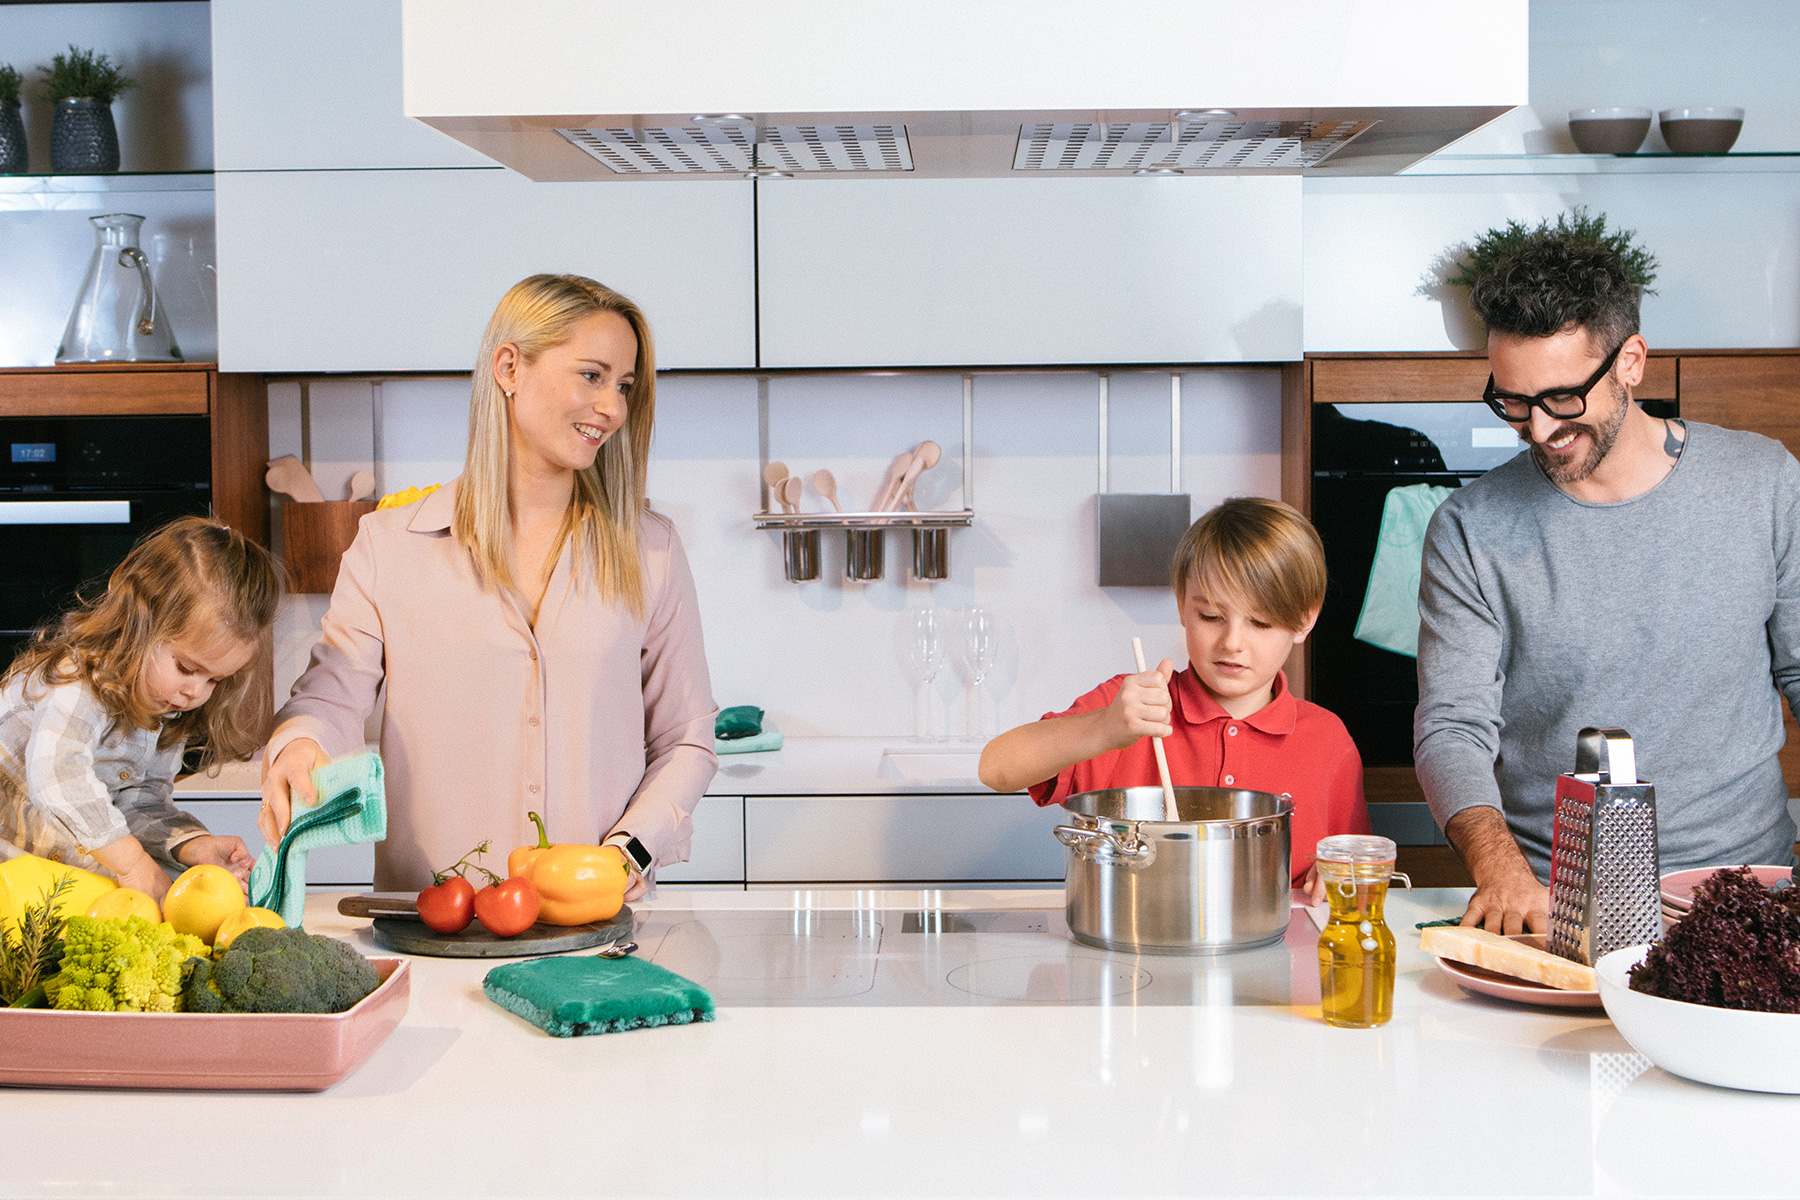 Family Familie ENJO saves money spart geld Küche kitchen